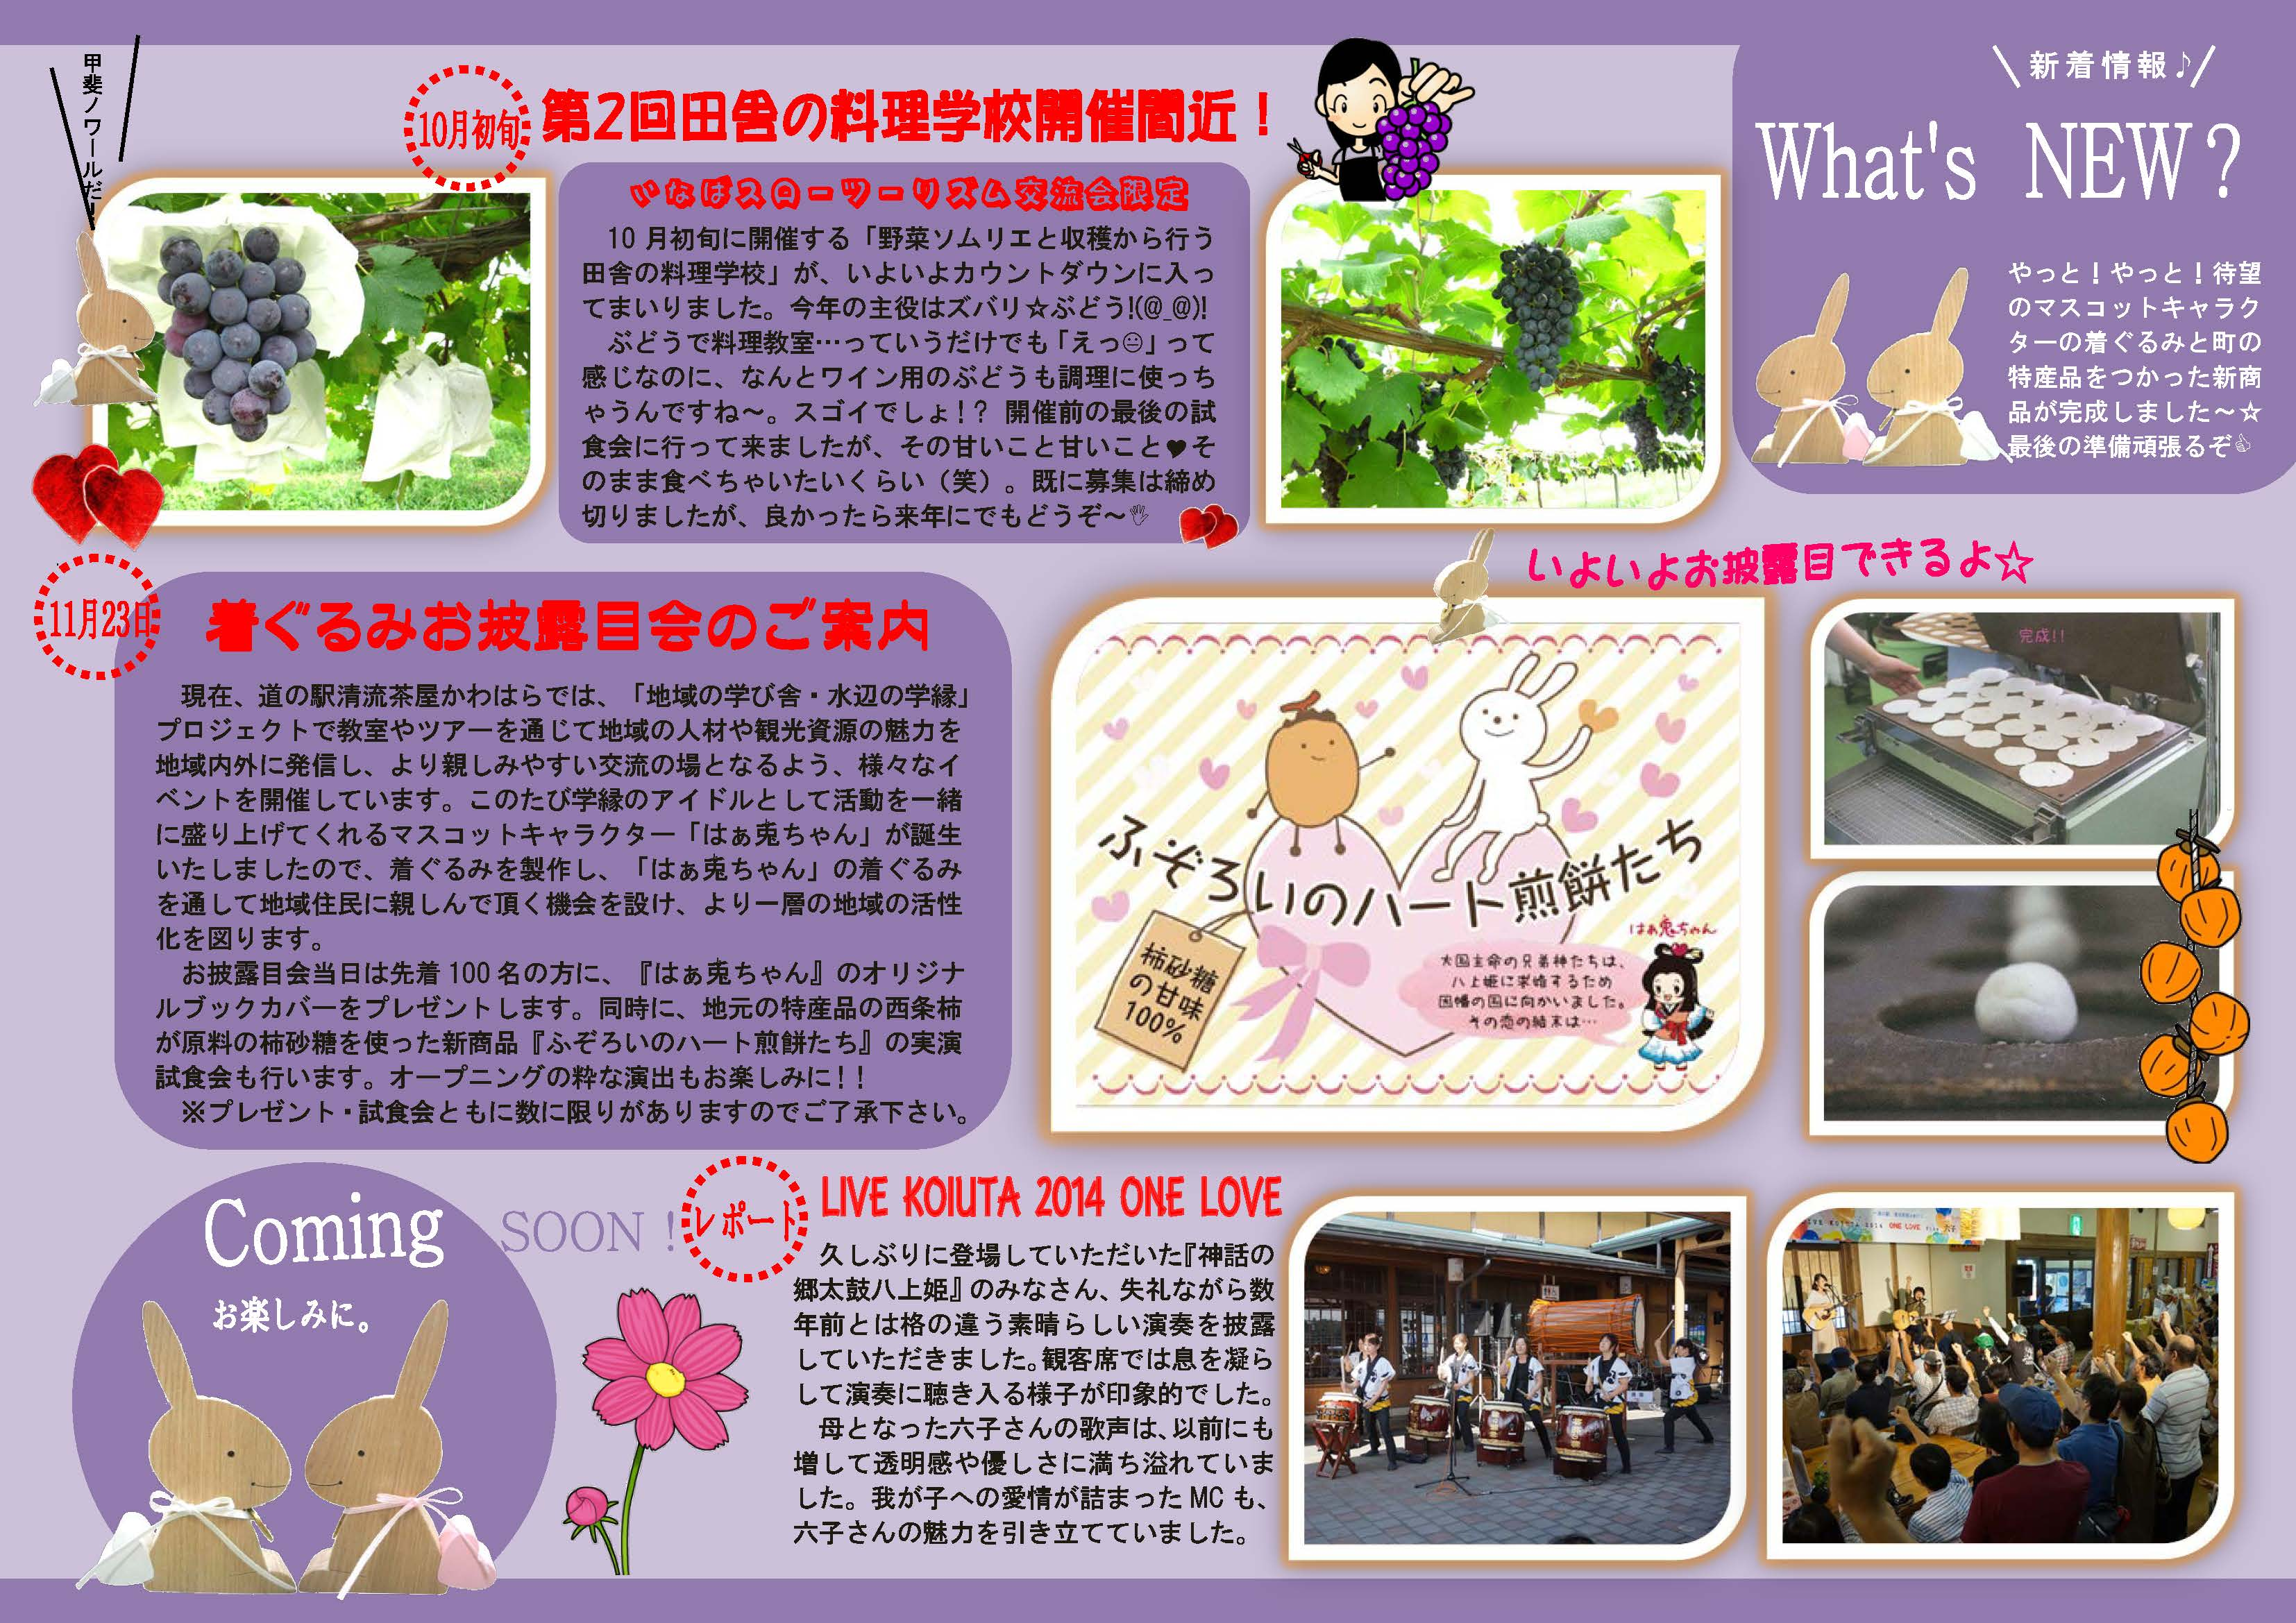 What's NEW?原稿№39